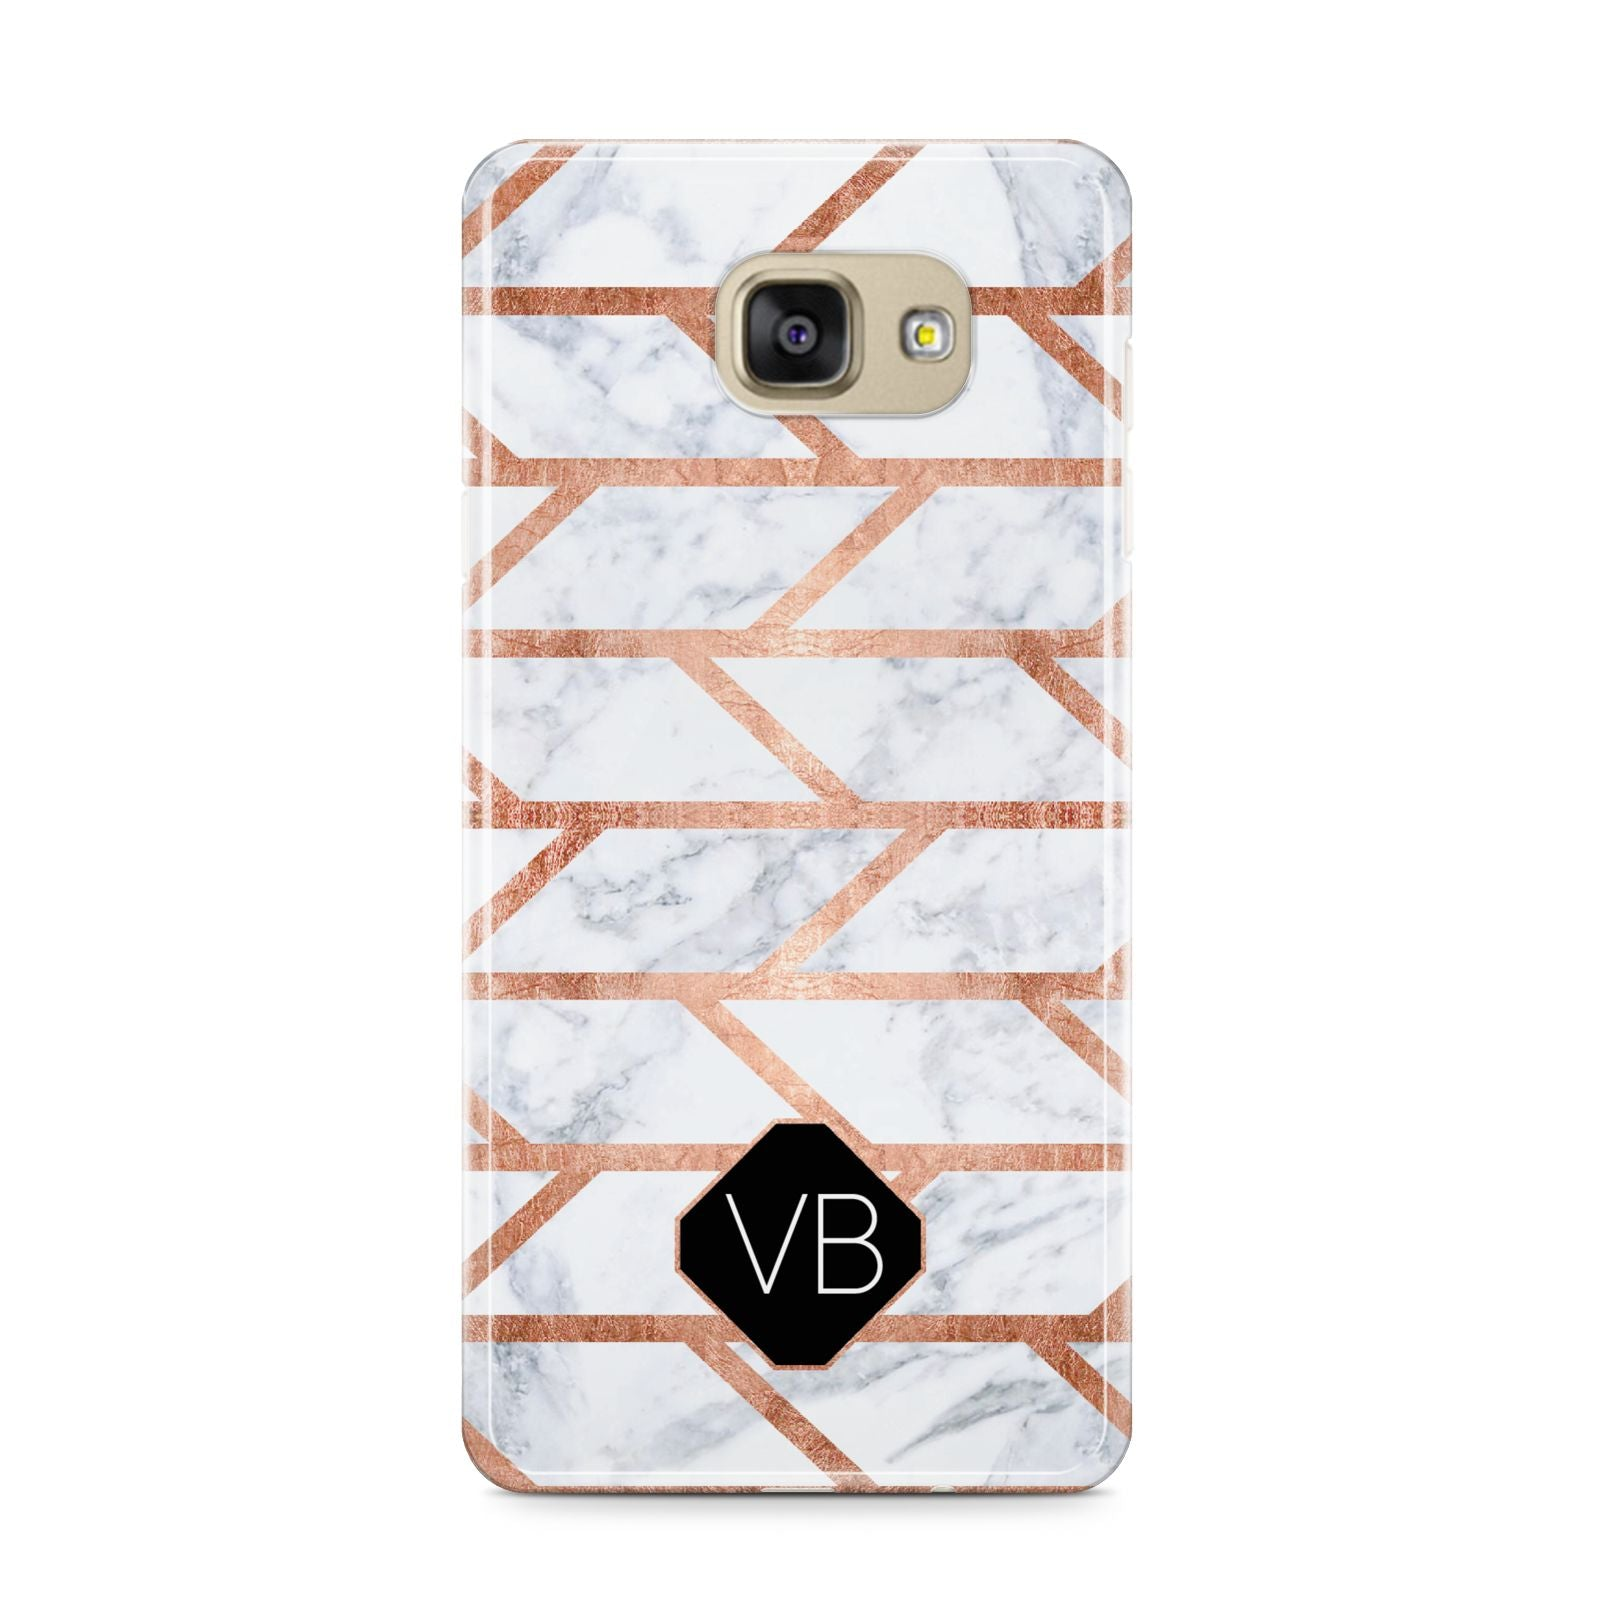 Personalised Rose Gold Faux Marble Initials Samsung Galaxy A9 2016 Case on gold phone